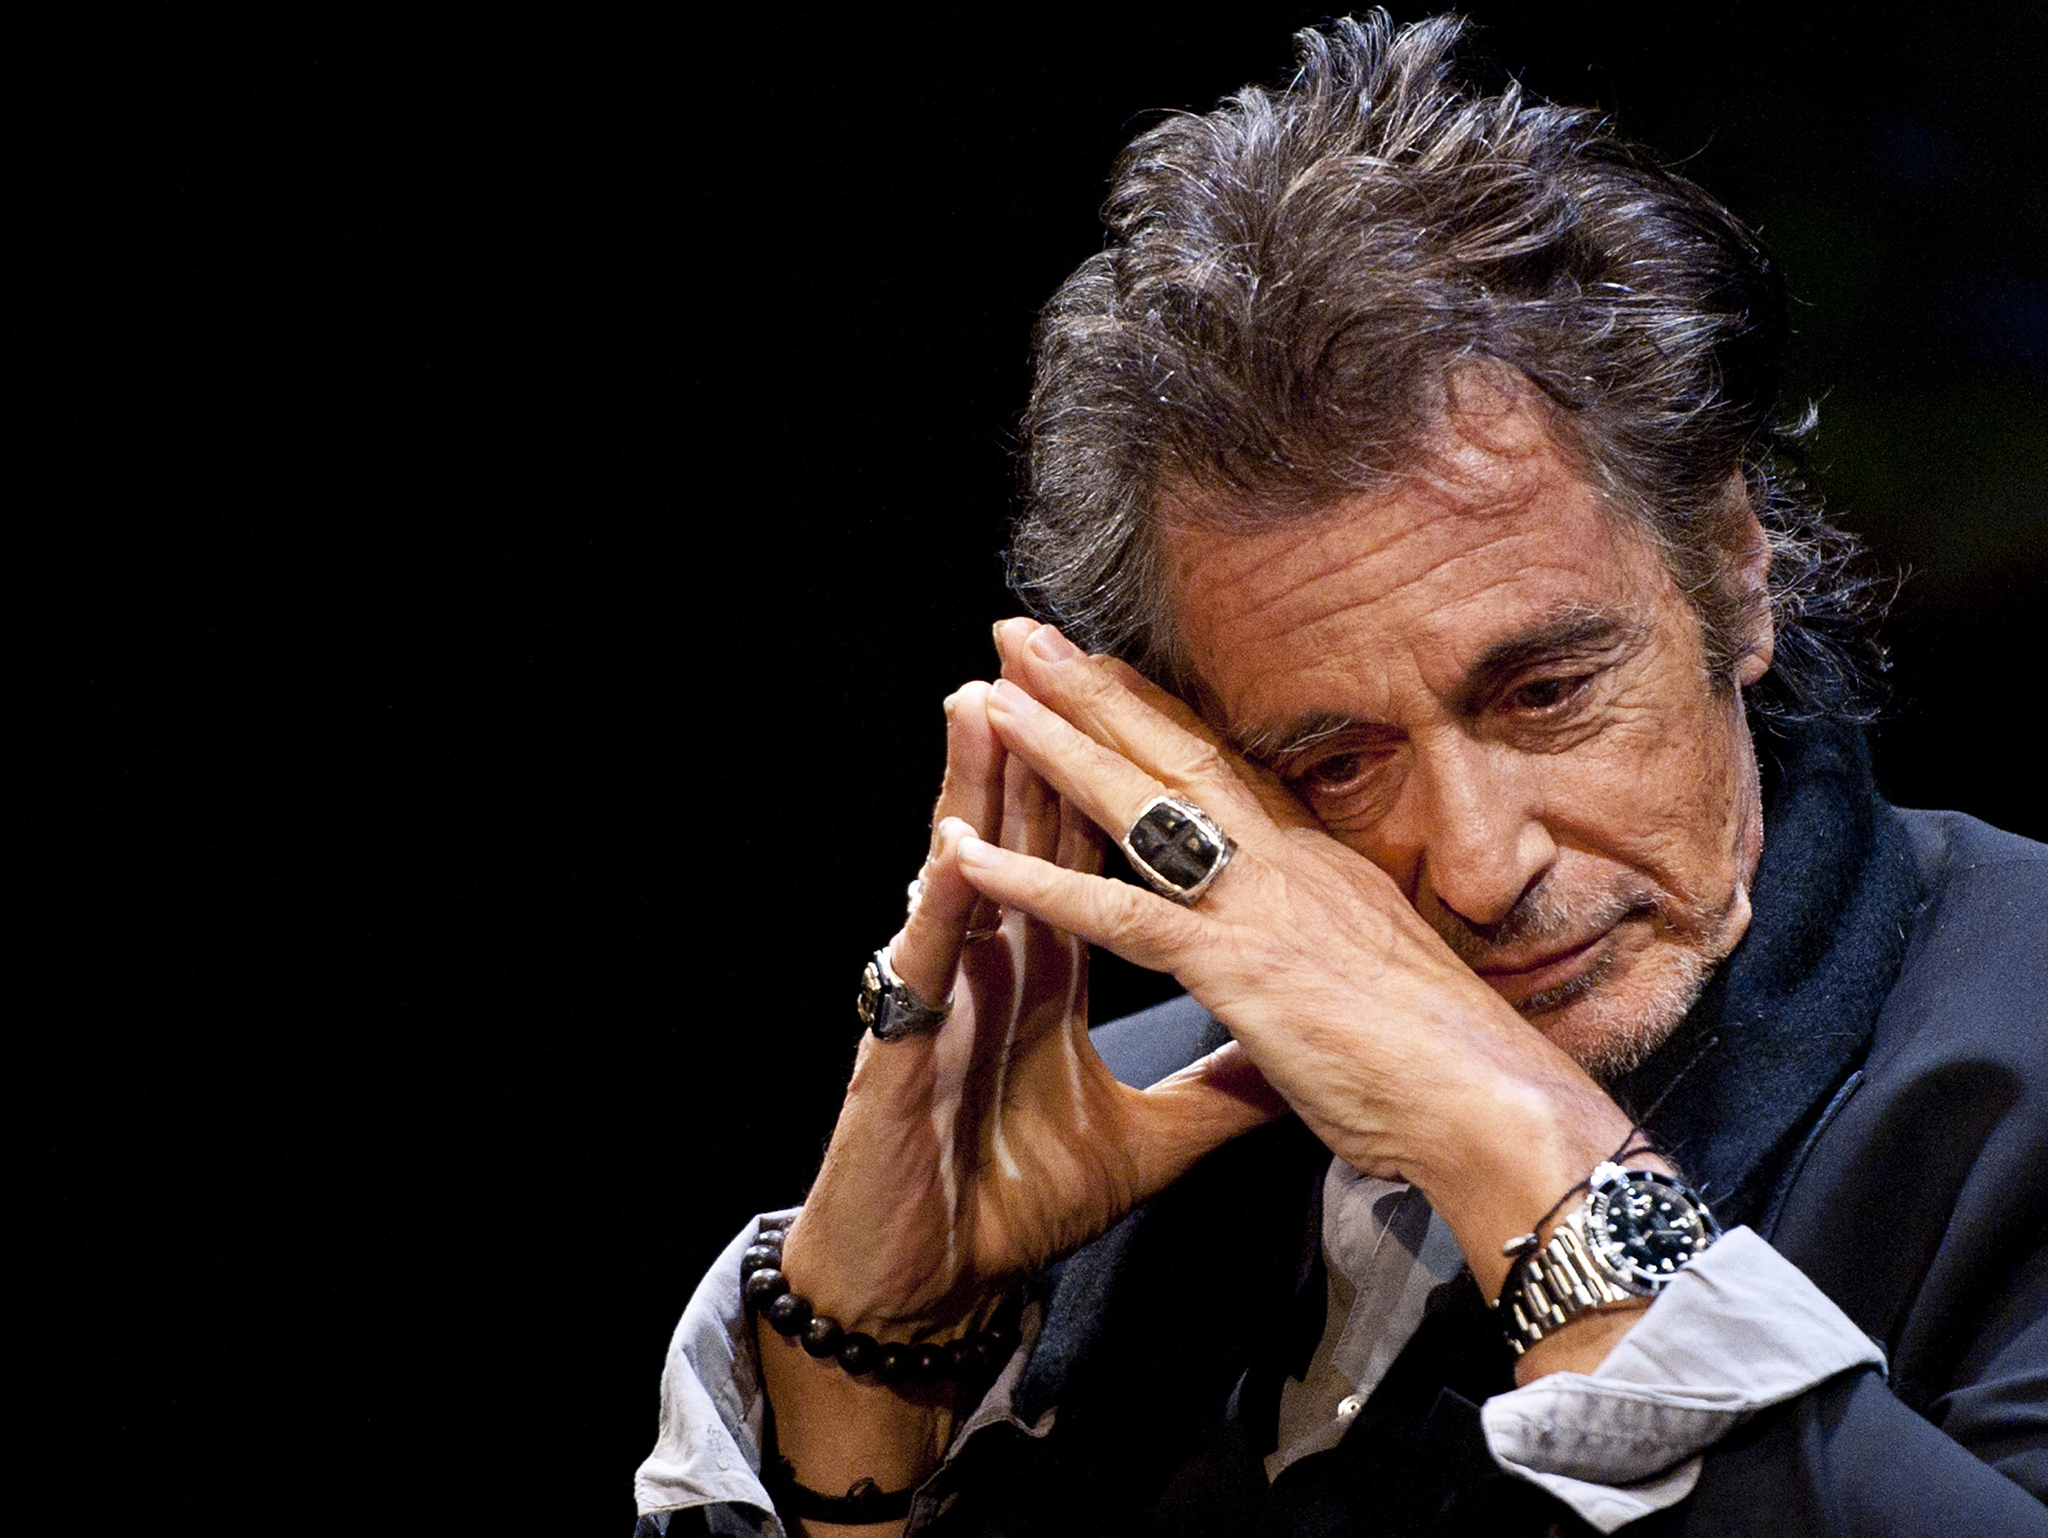 Al Pacino Wallpapers Images Photos Pictures Backgrounds Al Pacino